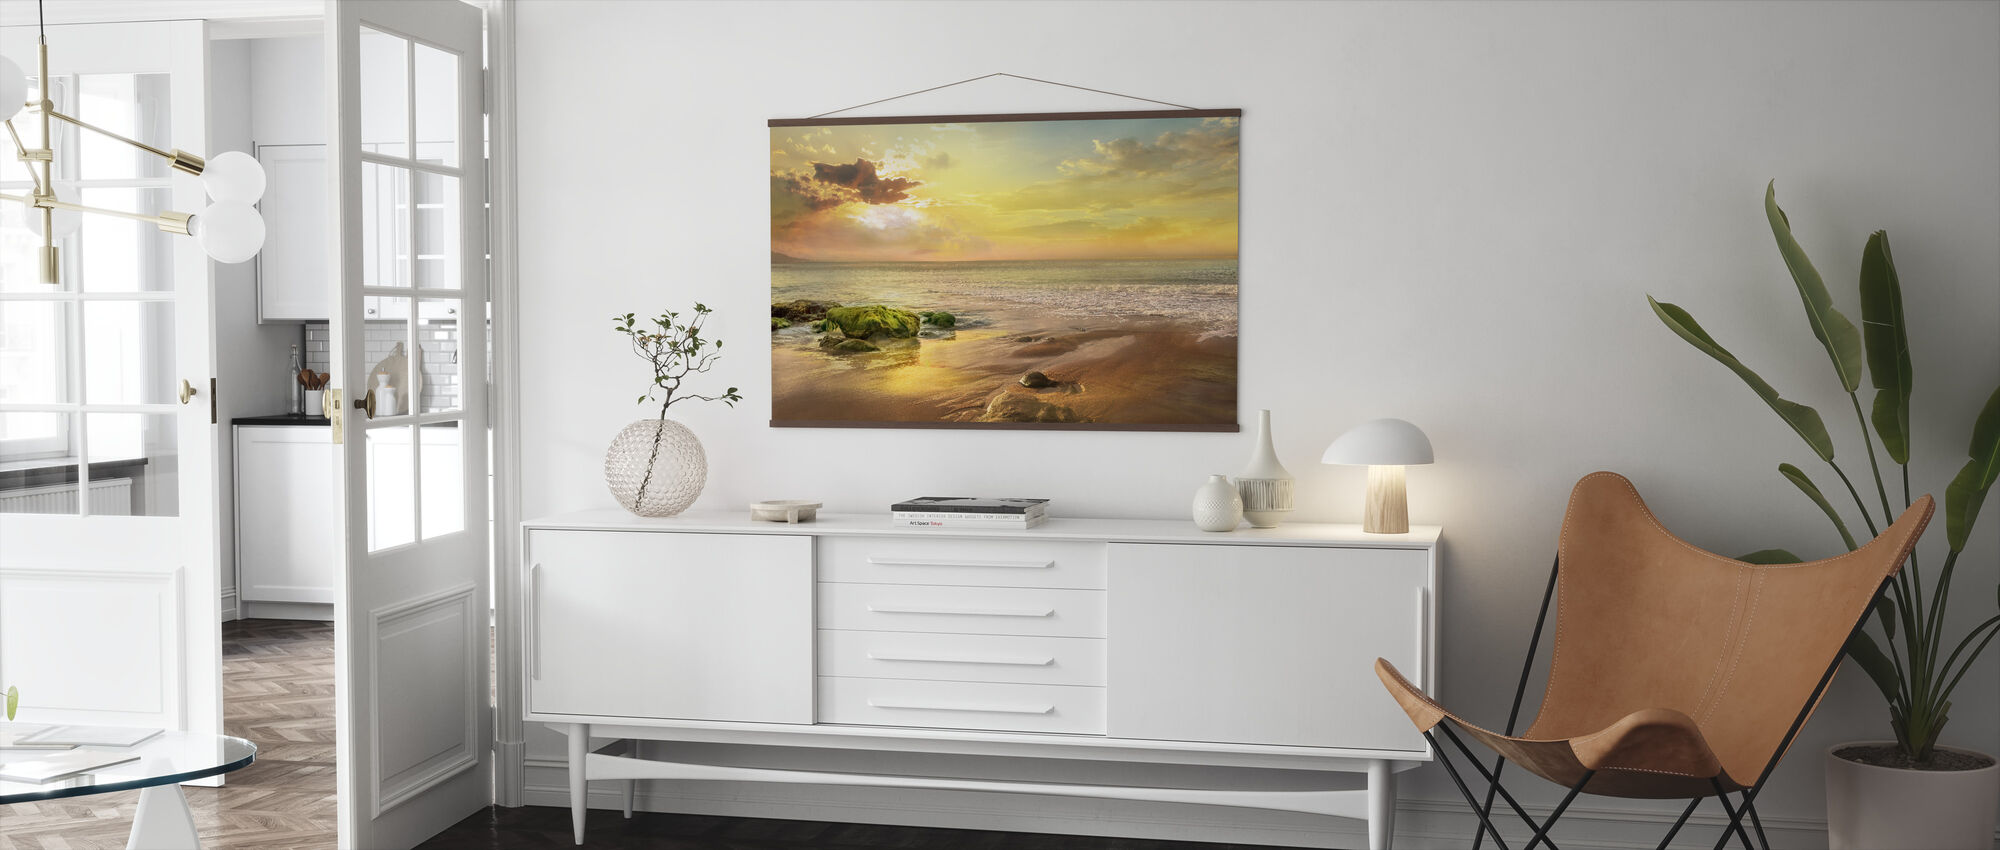 Stones on Beach - Poster - Living Room